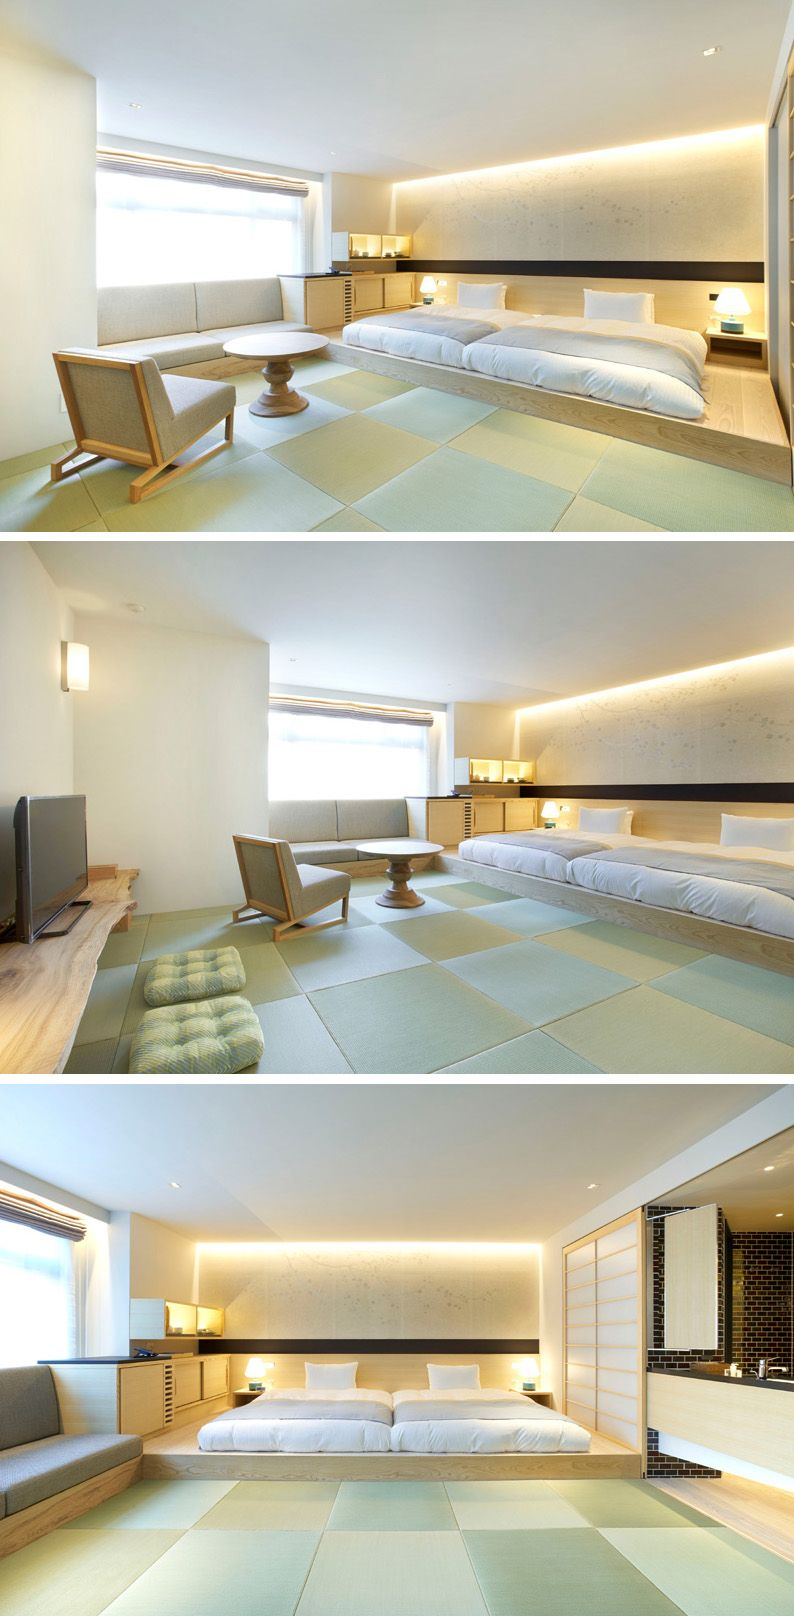 Hotel Bedroom: 7 Ways This Hotel Room Exemplifies Japanese Culture